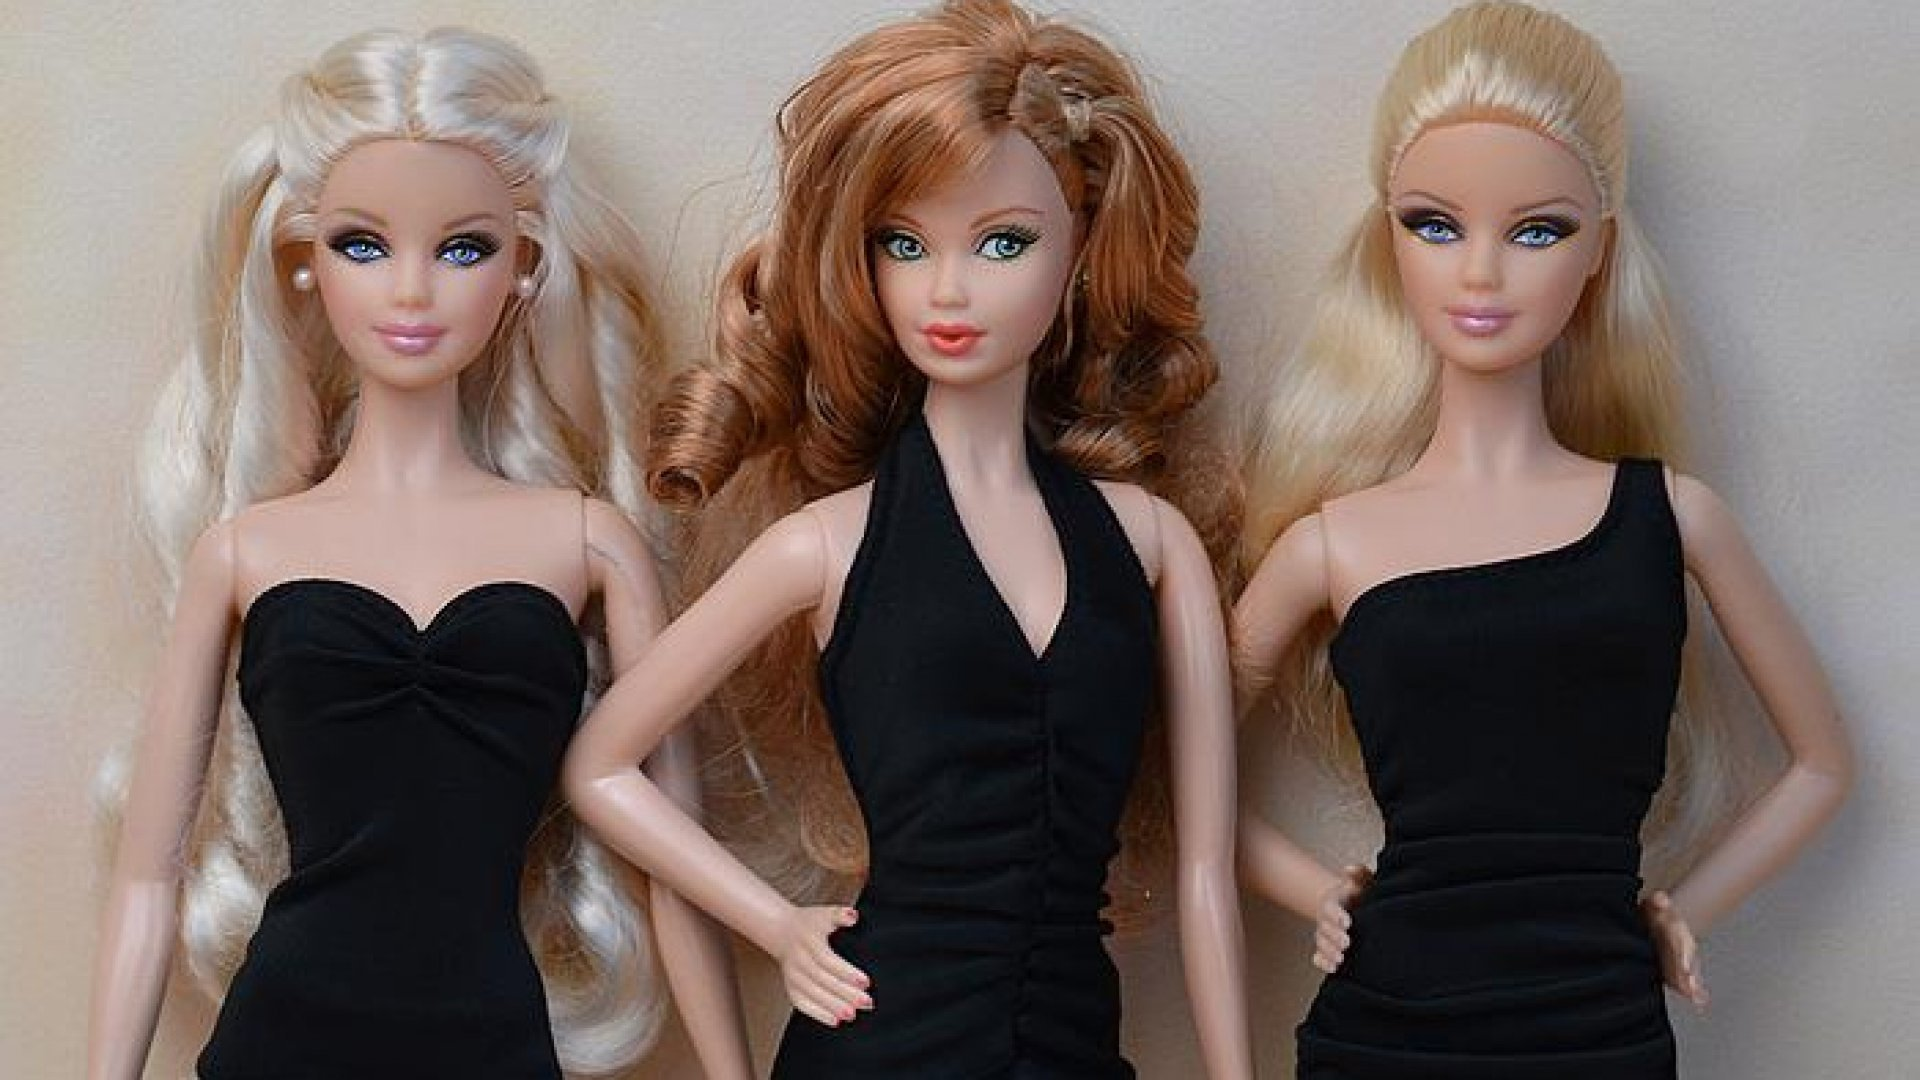 essay on barbie In the essay 'our barbies, ourselves,' emily prager explores the history of the barbie doll and talks about the barbie doll itself prager seems convinced that the barbie doll was an object created by a man and that barbie reeks of sexuality, sexual innuendo and serves as the anti-feminist embodiment of every man's fantasy.